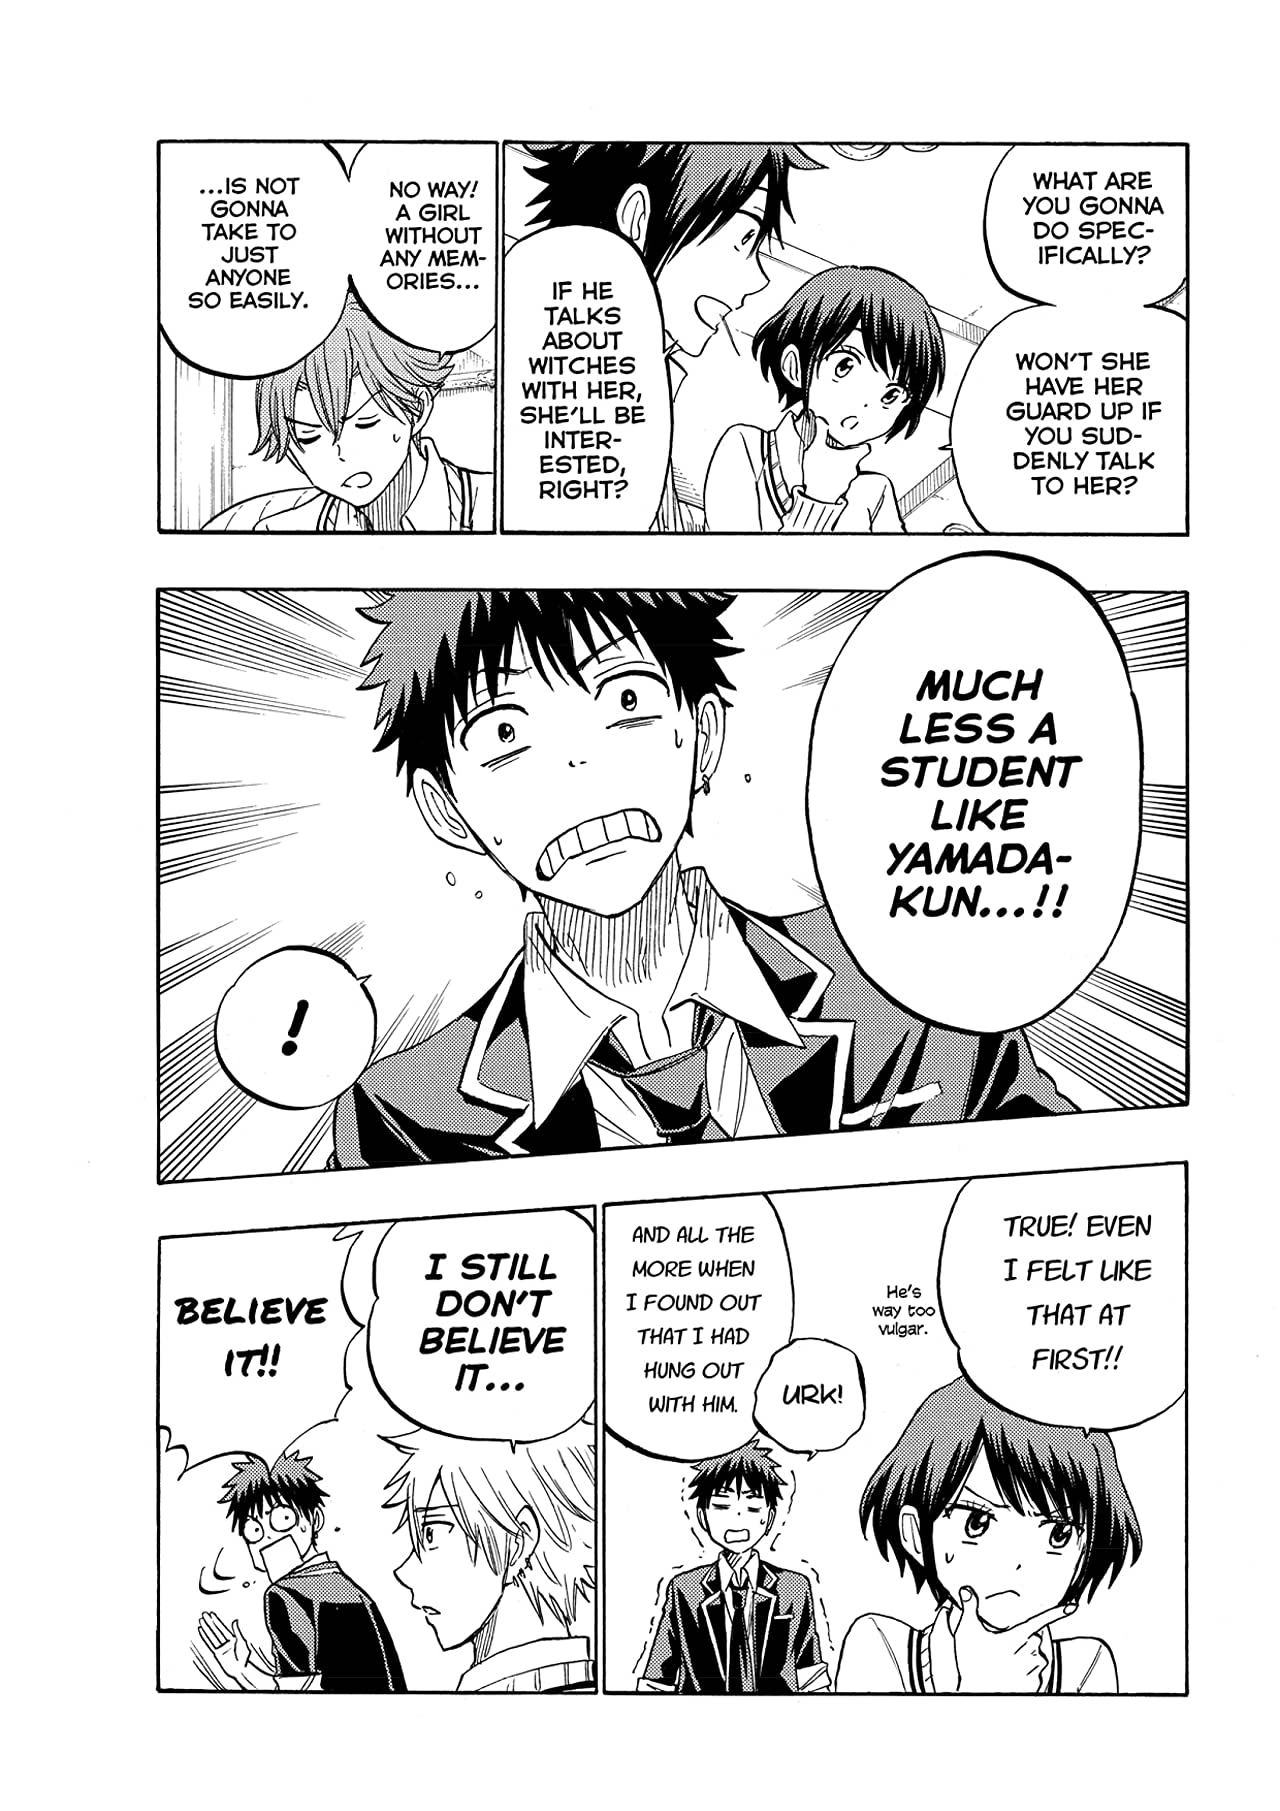 Yamada-kun and the Seven Witches #238